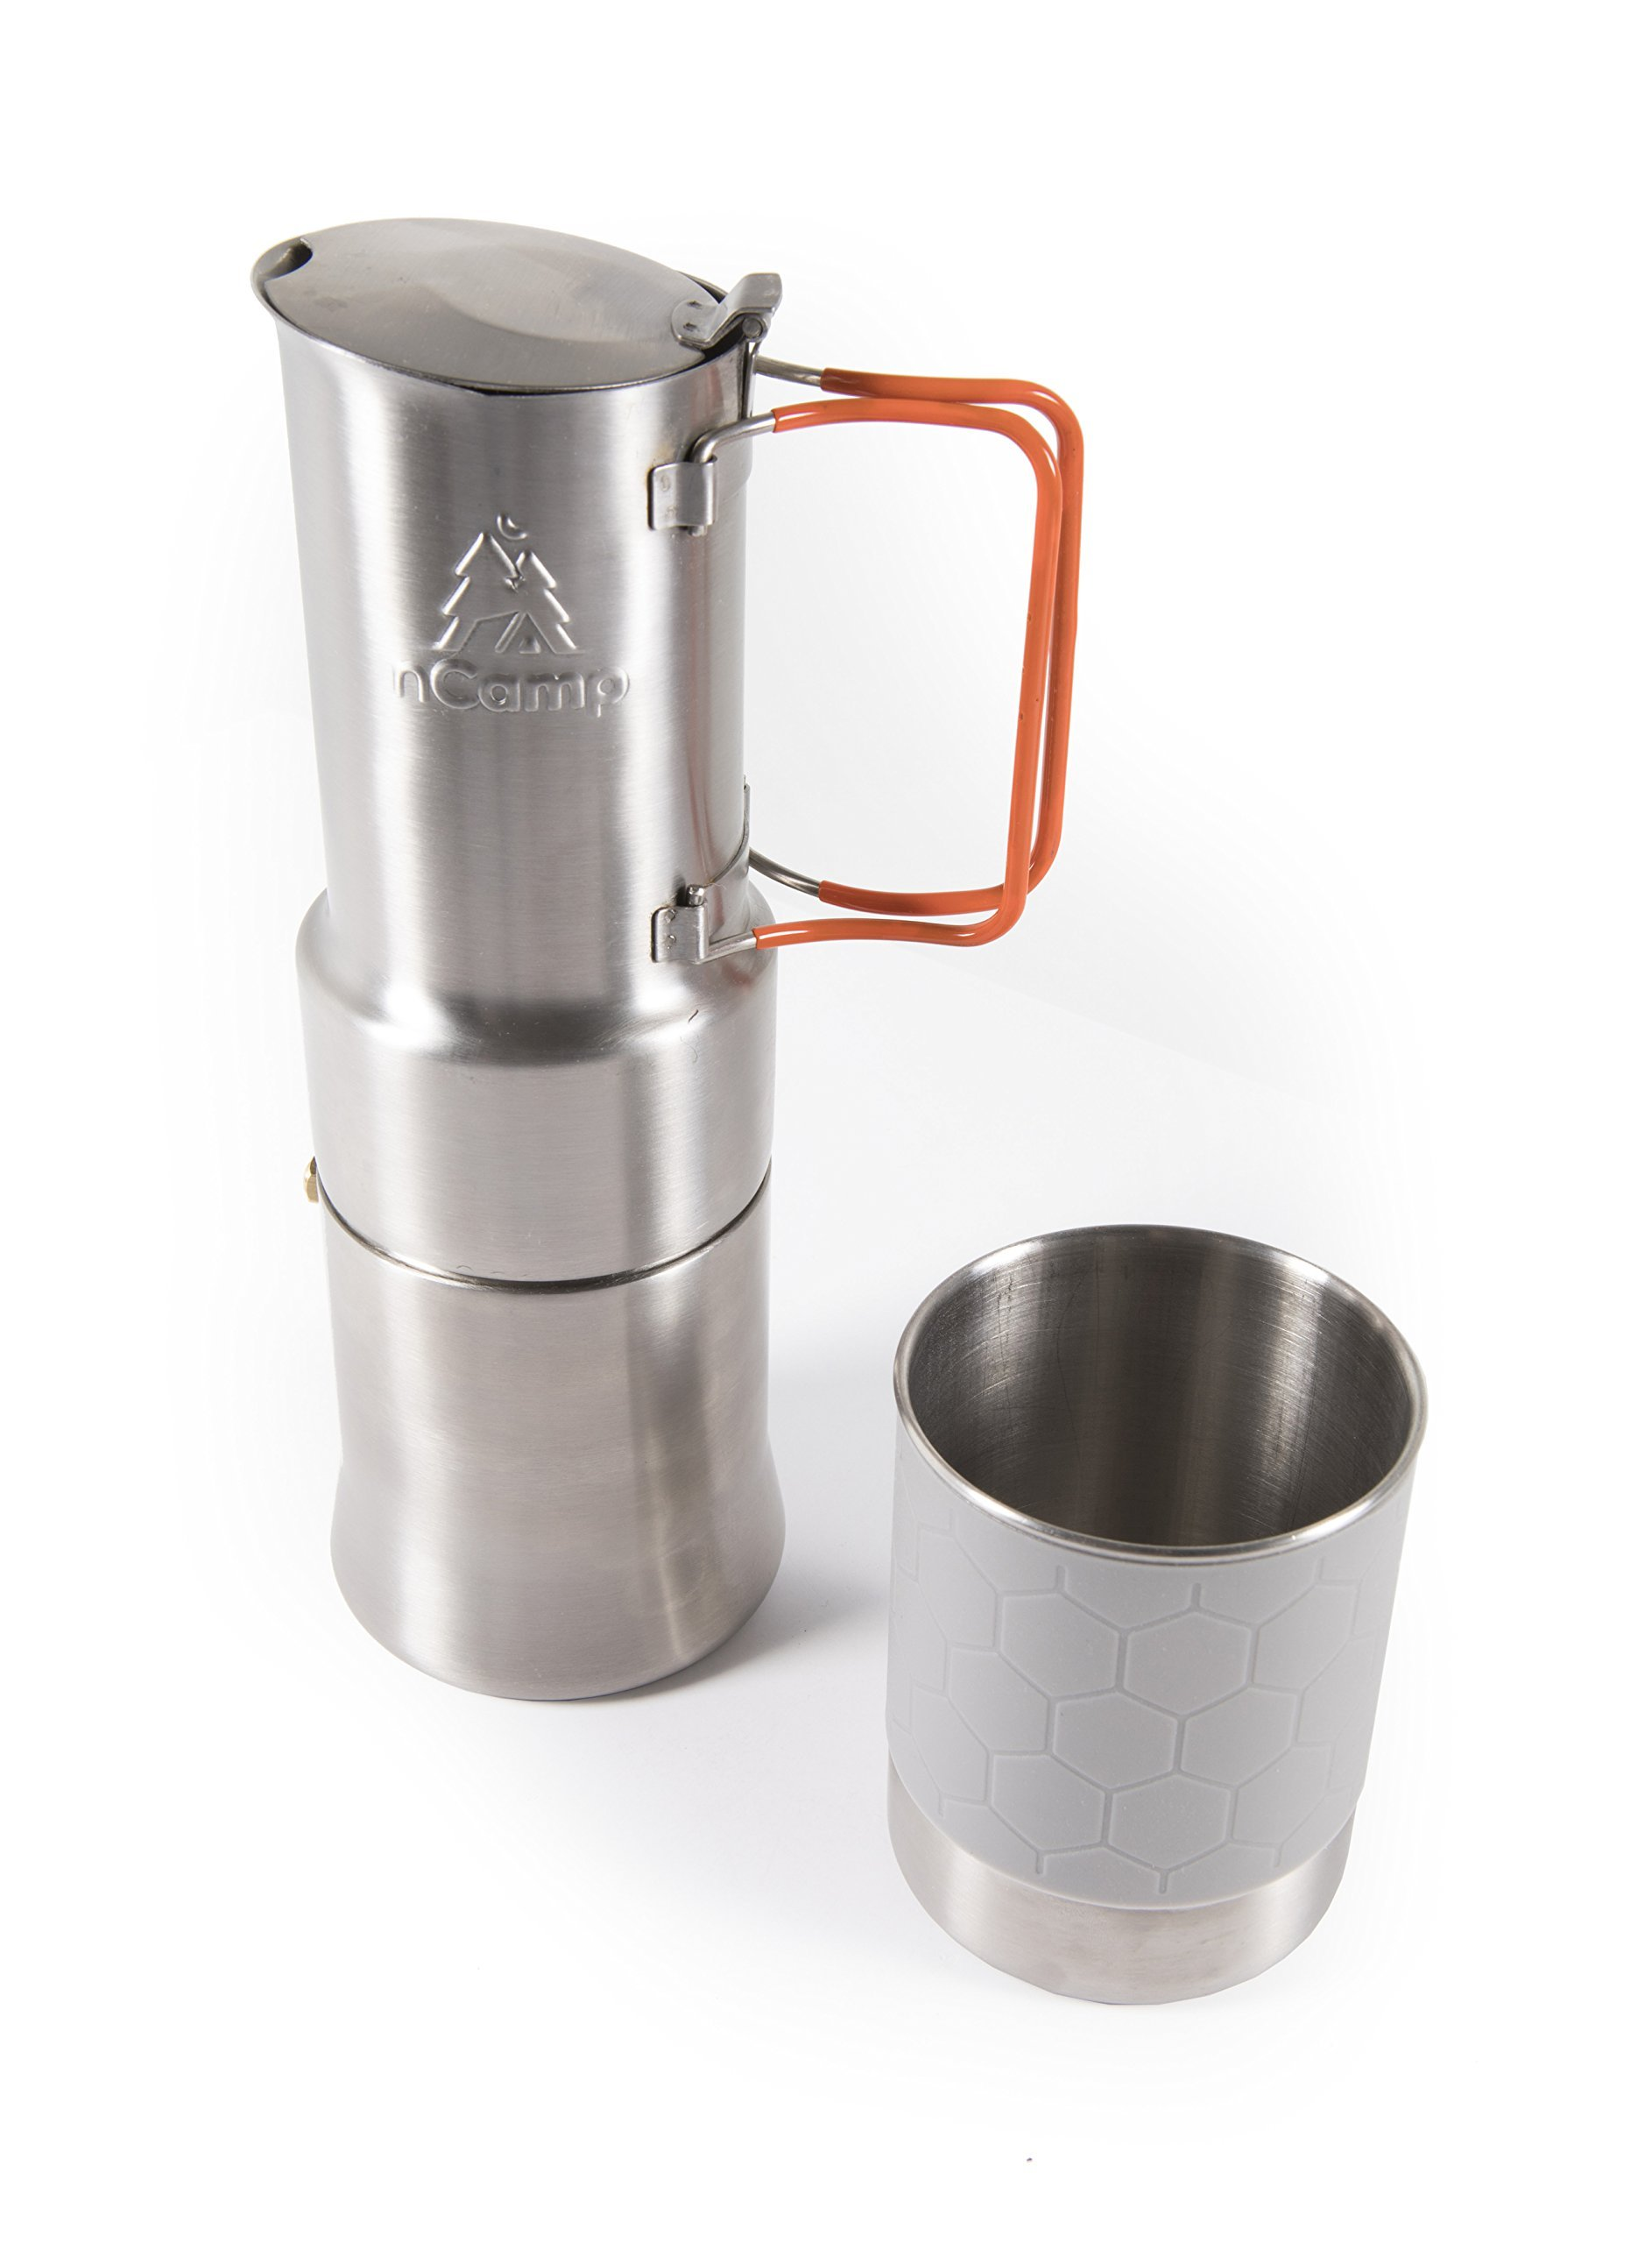 Compact Espresso-Style Café/Coffee Maker for Camping Hiking Backpacking/Compact and Lightweight